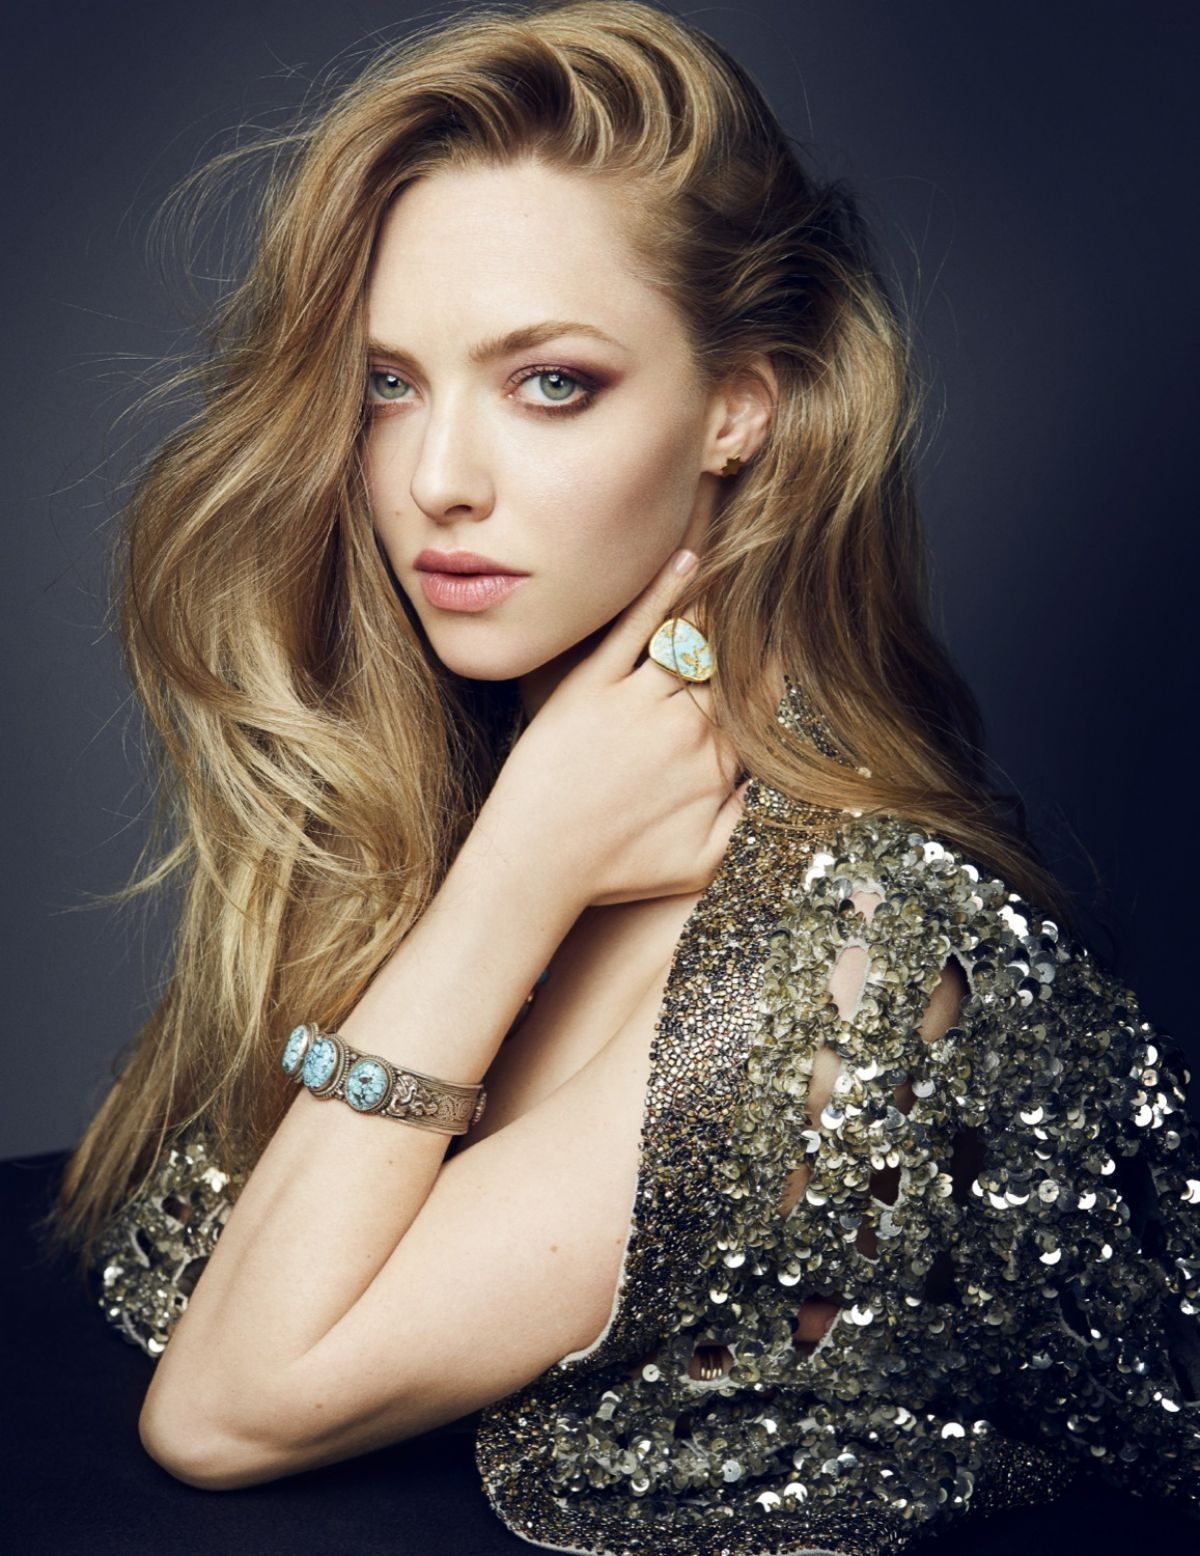 Amanda Seyfried cum shot Find this Pin and more on Amanda Seyfried.